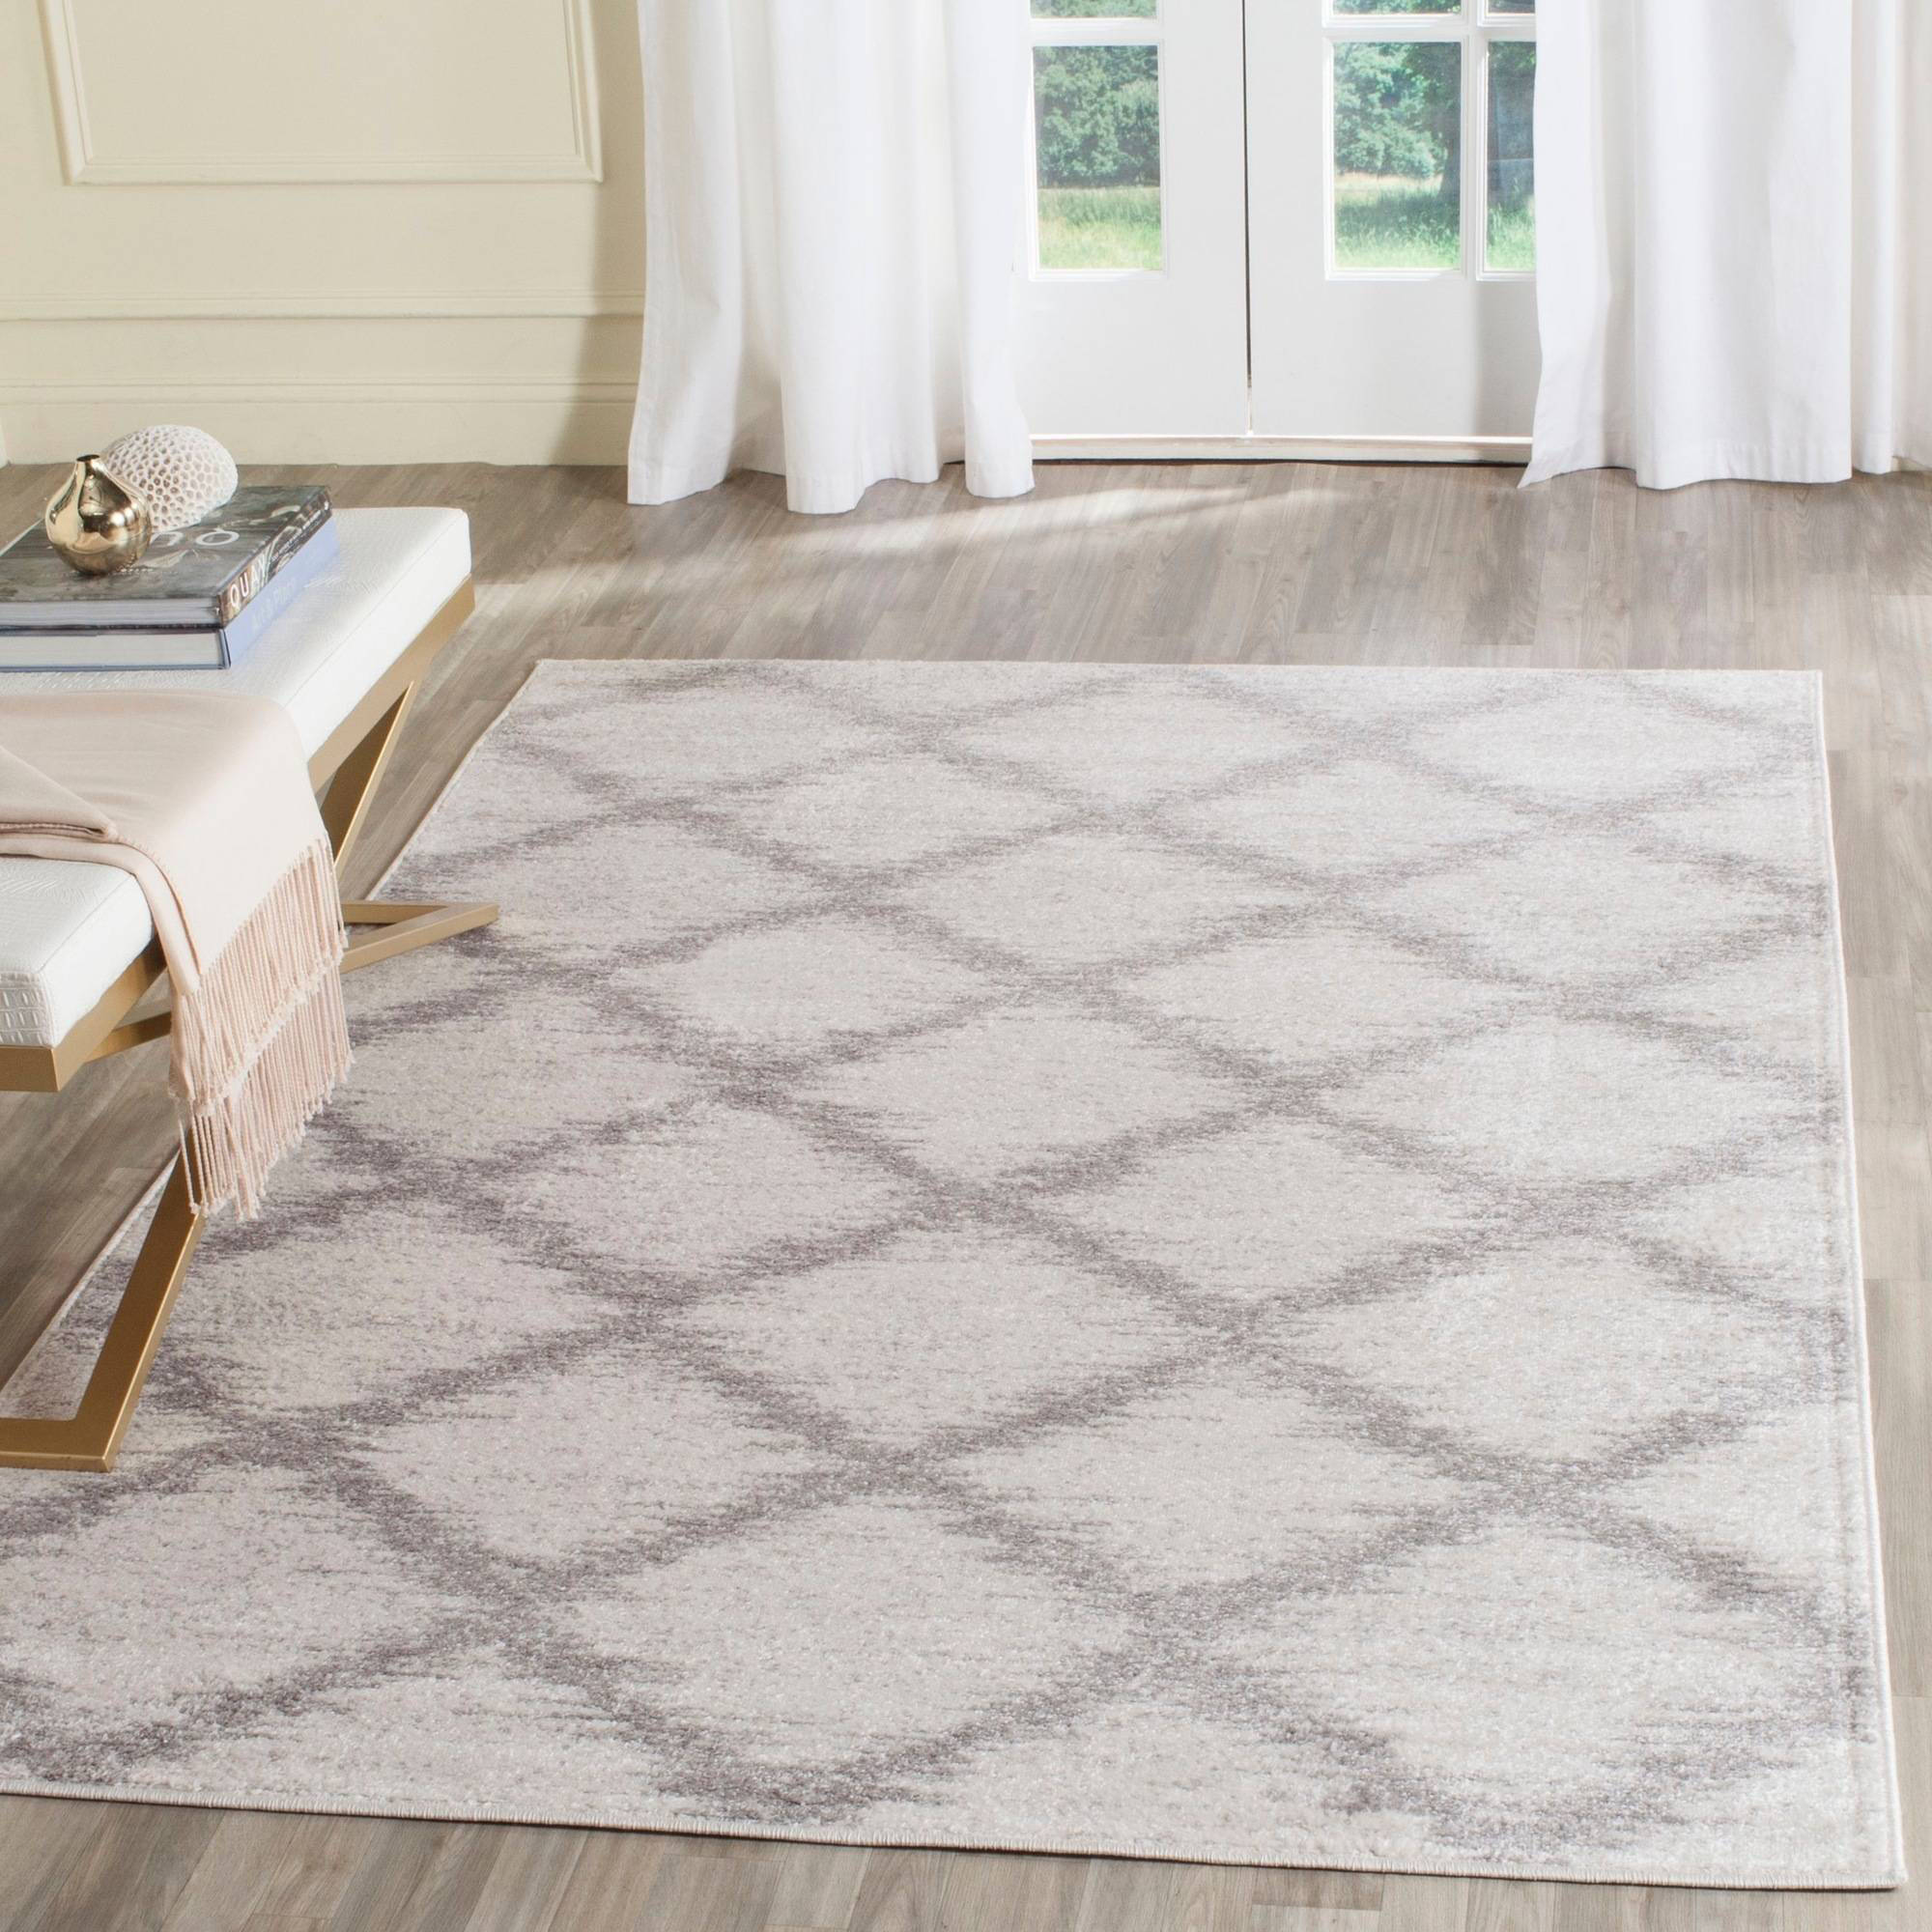 Safavieh Adirondack Grayson Geometric Diamonds Area Rug or Runner